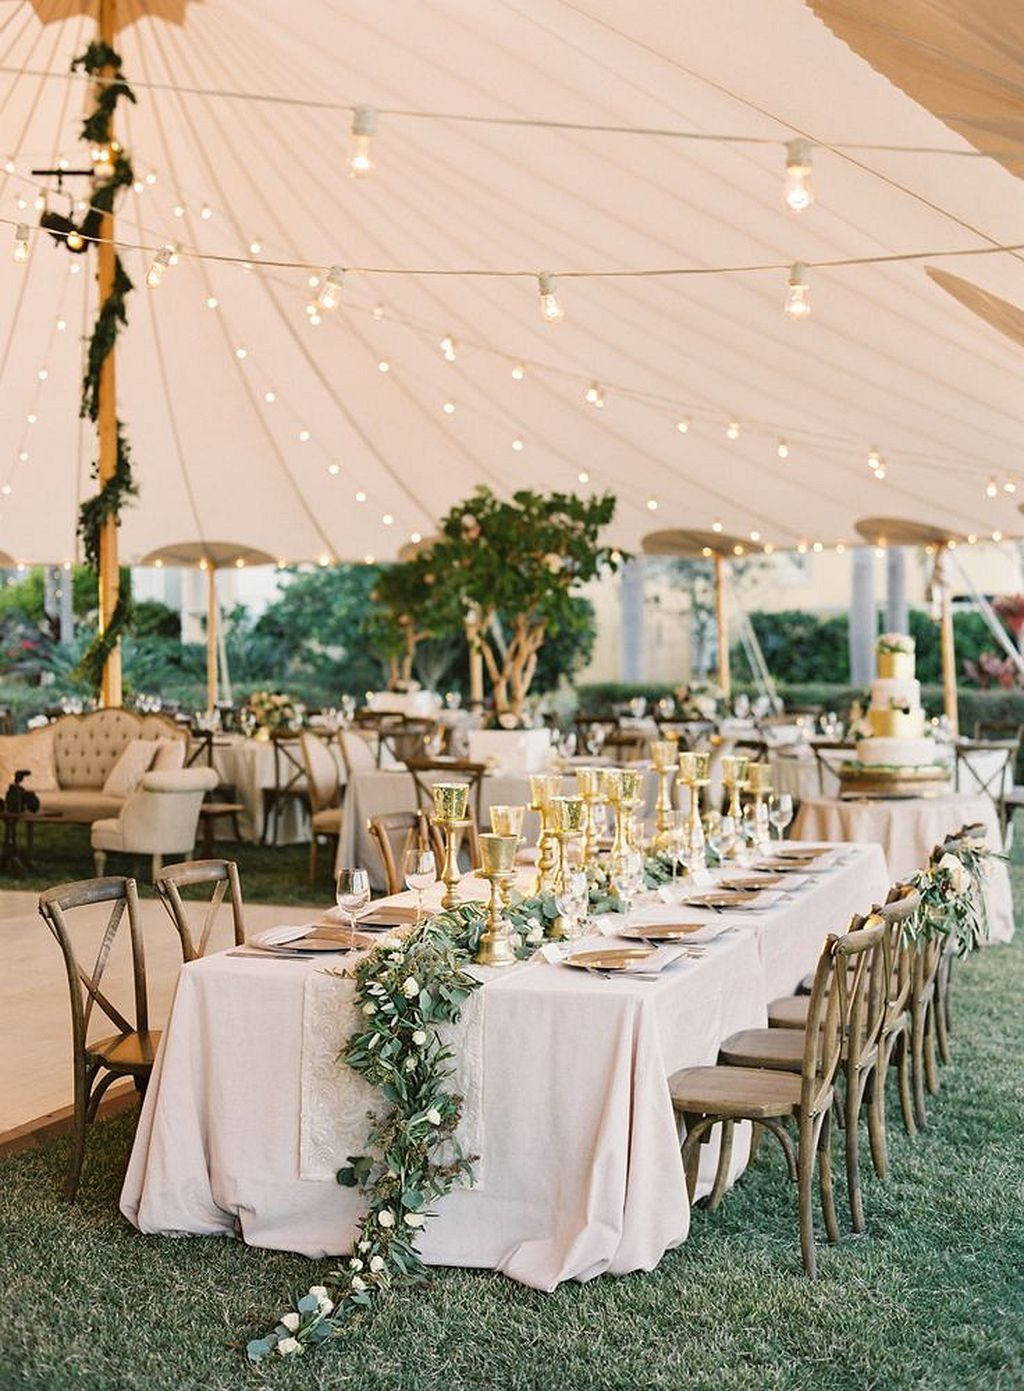 Stunning 60 Outdoor Wedding On A Budget Ideas Https Weddmagz